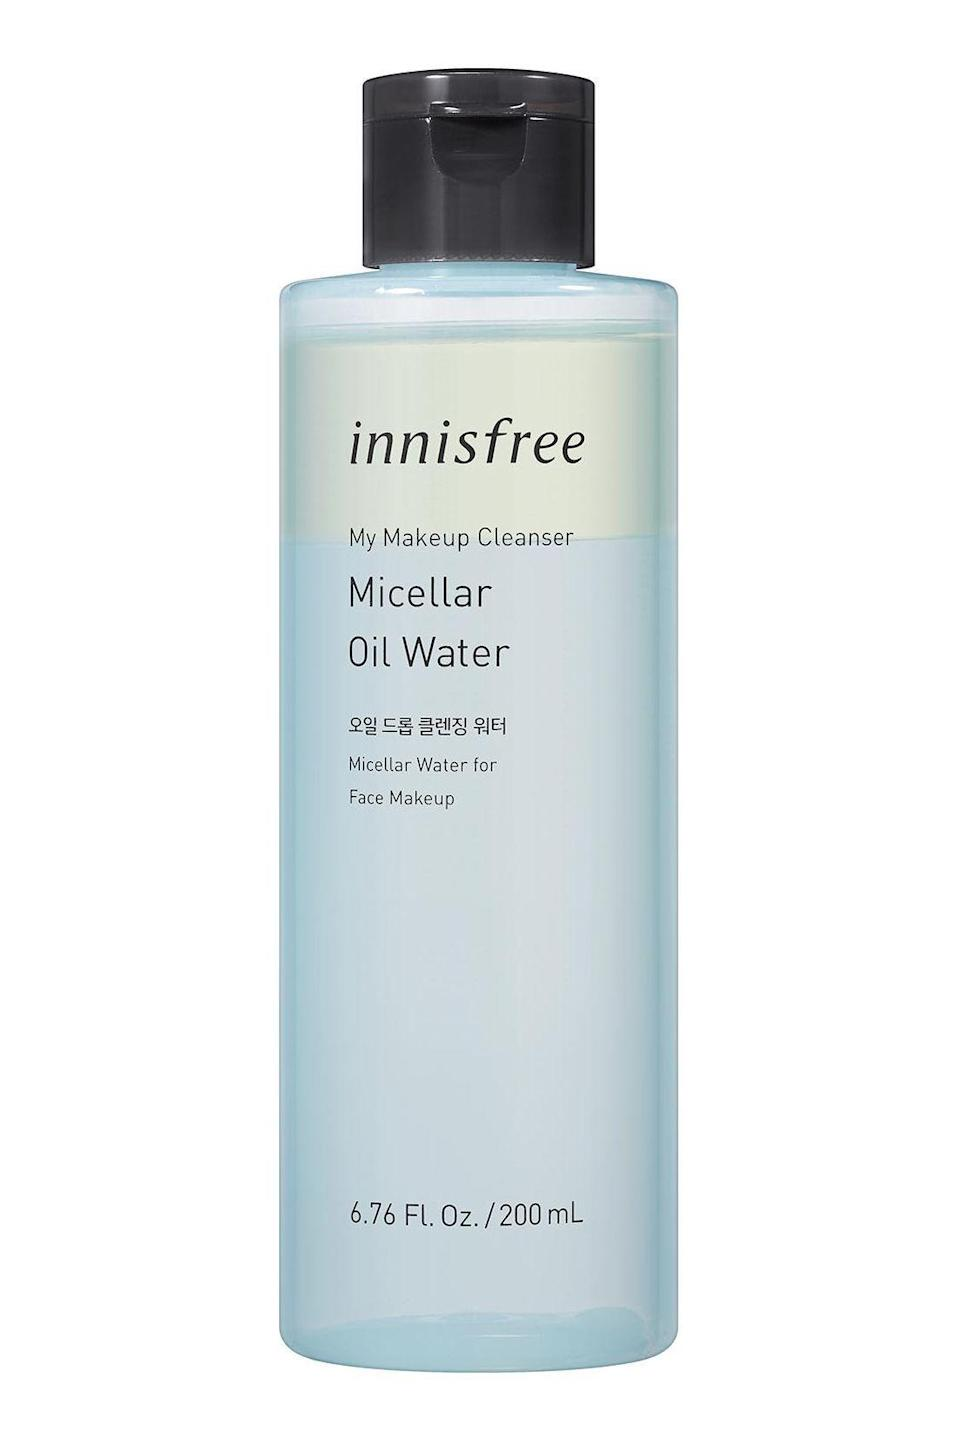 """<p><strong>Innisfree</strong></p><p>amazon.com</p><p><strong>$14.42</strong></p><p><a href=""""https://www.amazon.com/dp/B07X88QPQH?tag=syn-yahoo-20&ascsubtag=%5Bartid%7C10058.g.33863683%5Bsrc%7Cyahoo-us"""" rel=""""nofollow noopener"""" target=""""_blank"""" data-ylk=""""slk:SHOP IT"""" class=""""link rapid-noclick-resp"""">SHOP IT</a></p><p>K-beauty has seldom steered me wrong, and this is no exception—in fact, this is my favorite remover of all time. Give the bottle a good shake to mix the oil and water together, then apply the formula with a cotton pad. The oil helps to loosen even the heaviest mascara and foundation, and the micellar water lifts away the pigment so you're never left with those sad cheek streaks. </p>"""